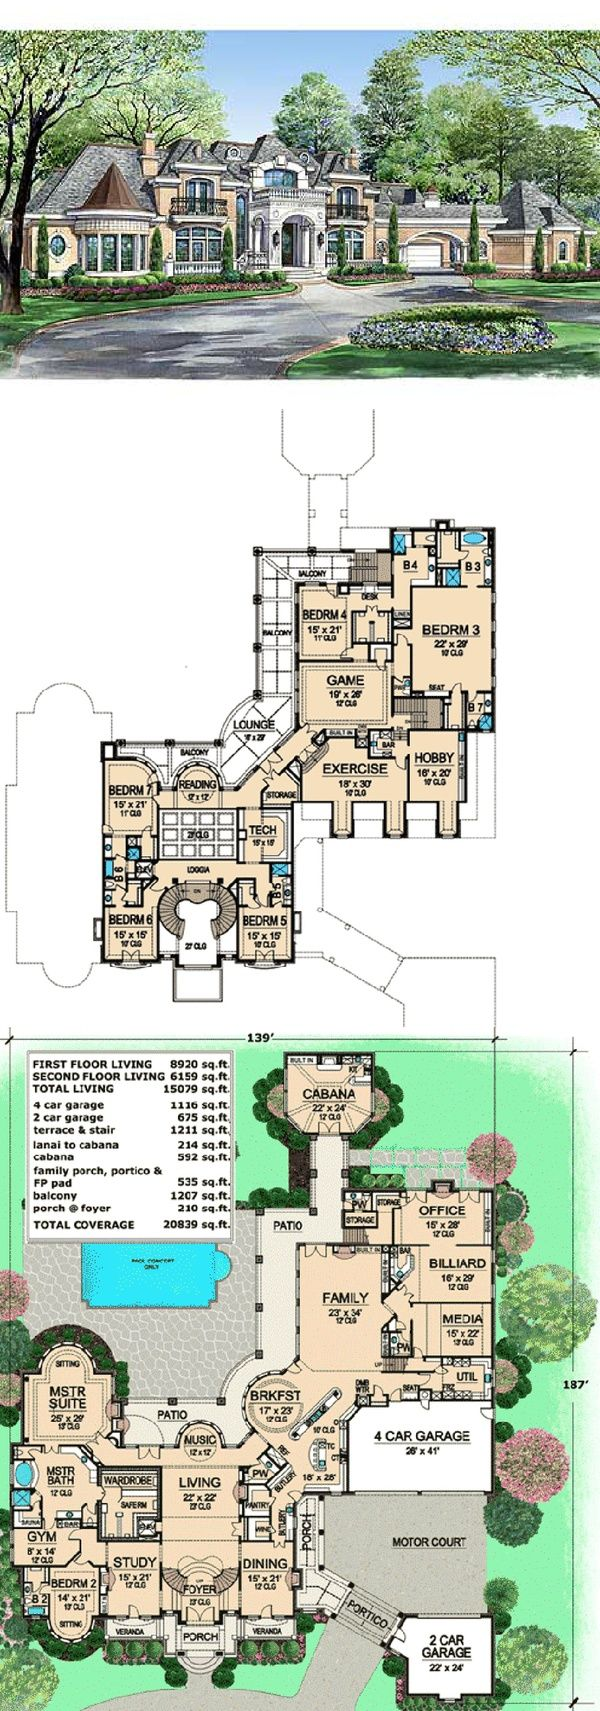 best 25 two storey house plans ideas on pinterest 2 storey b08bc21ee48cb91860e1ae0af5201978 jpg 600 1 711 pixels home floor planshome